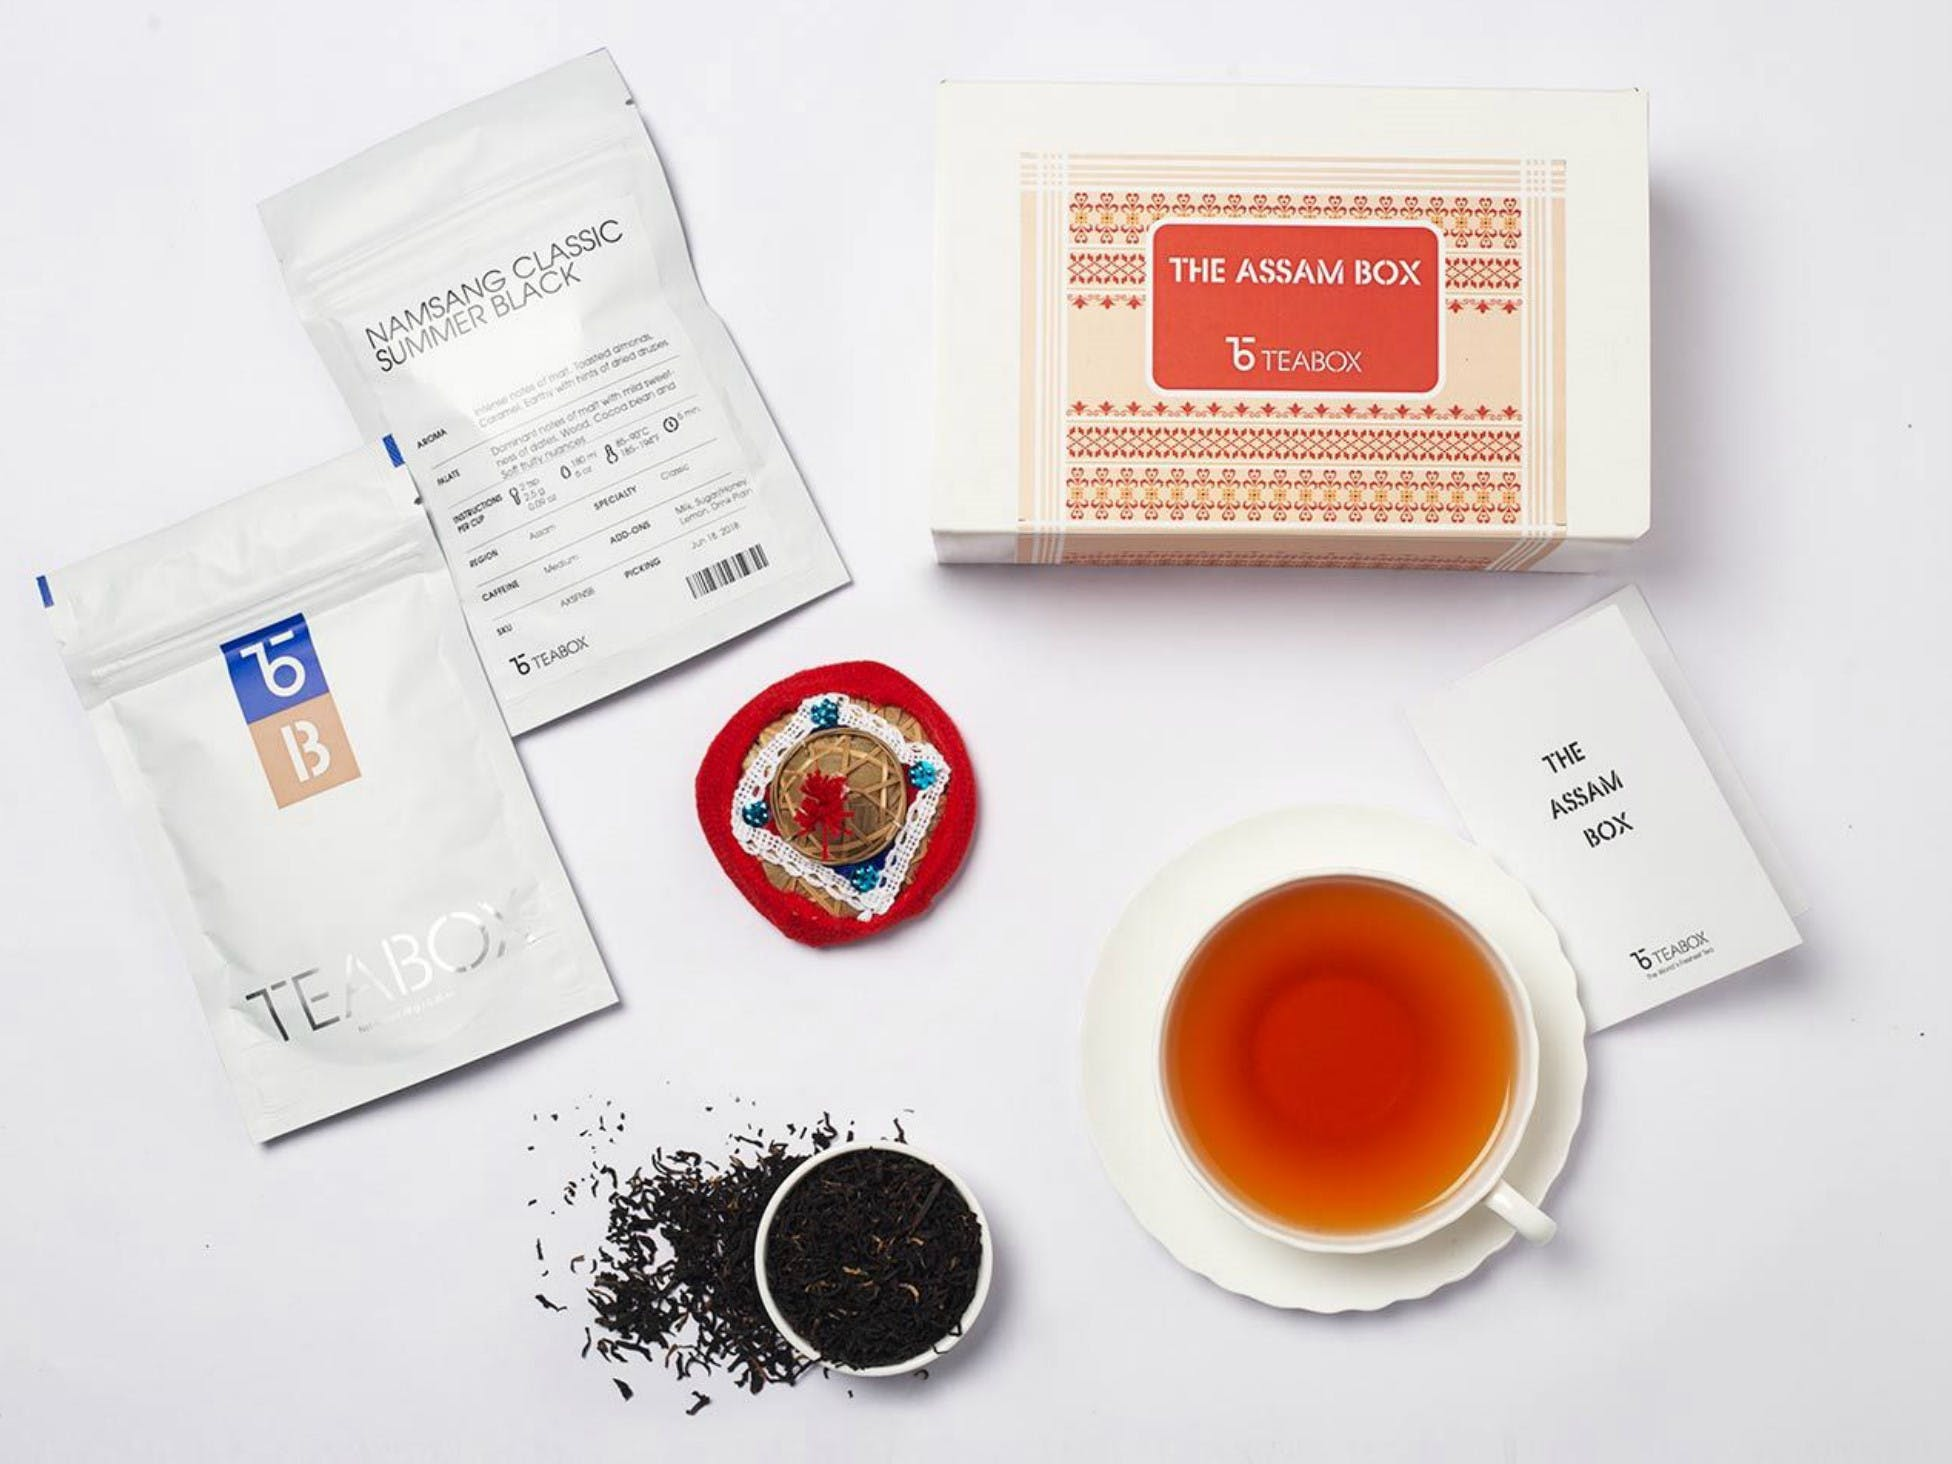 Teabox - Tea Subscription Box